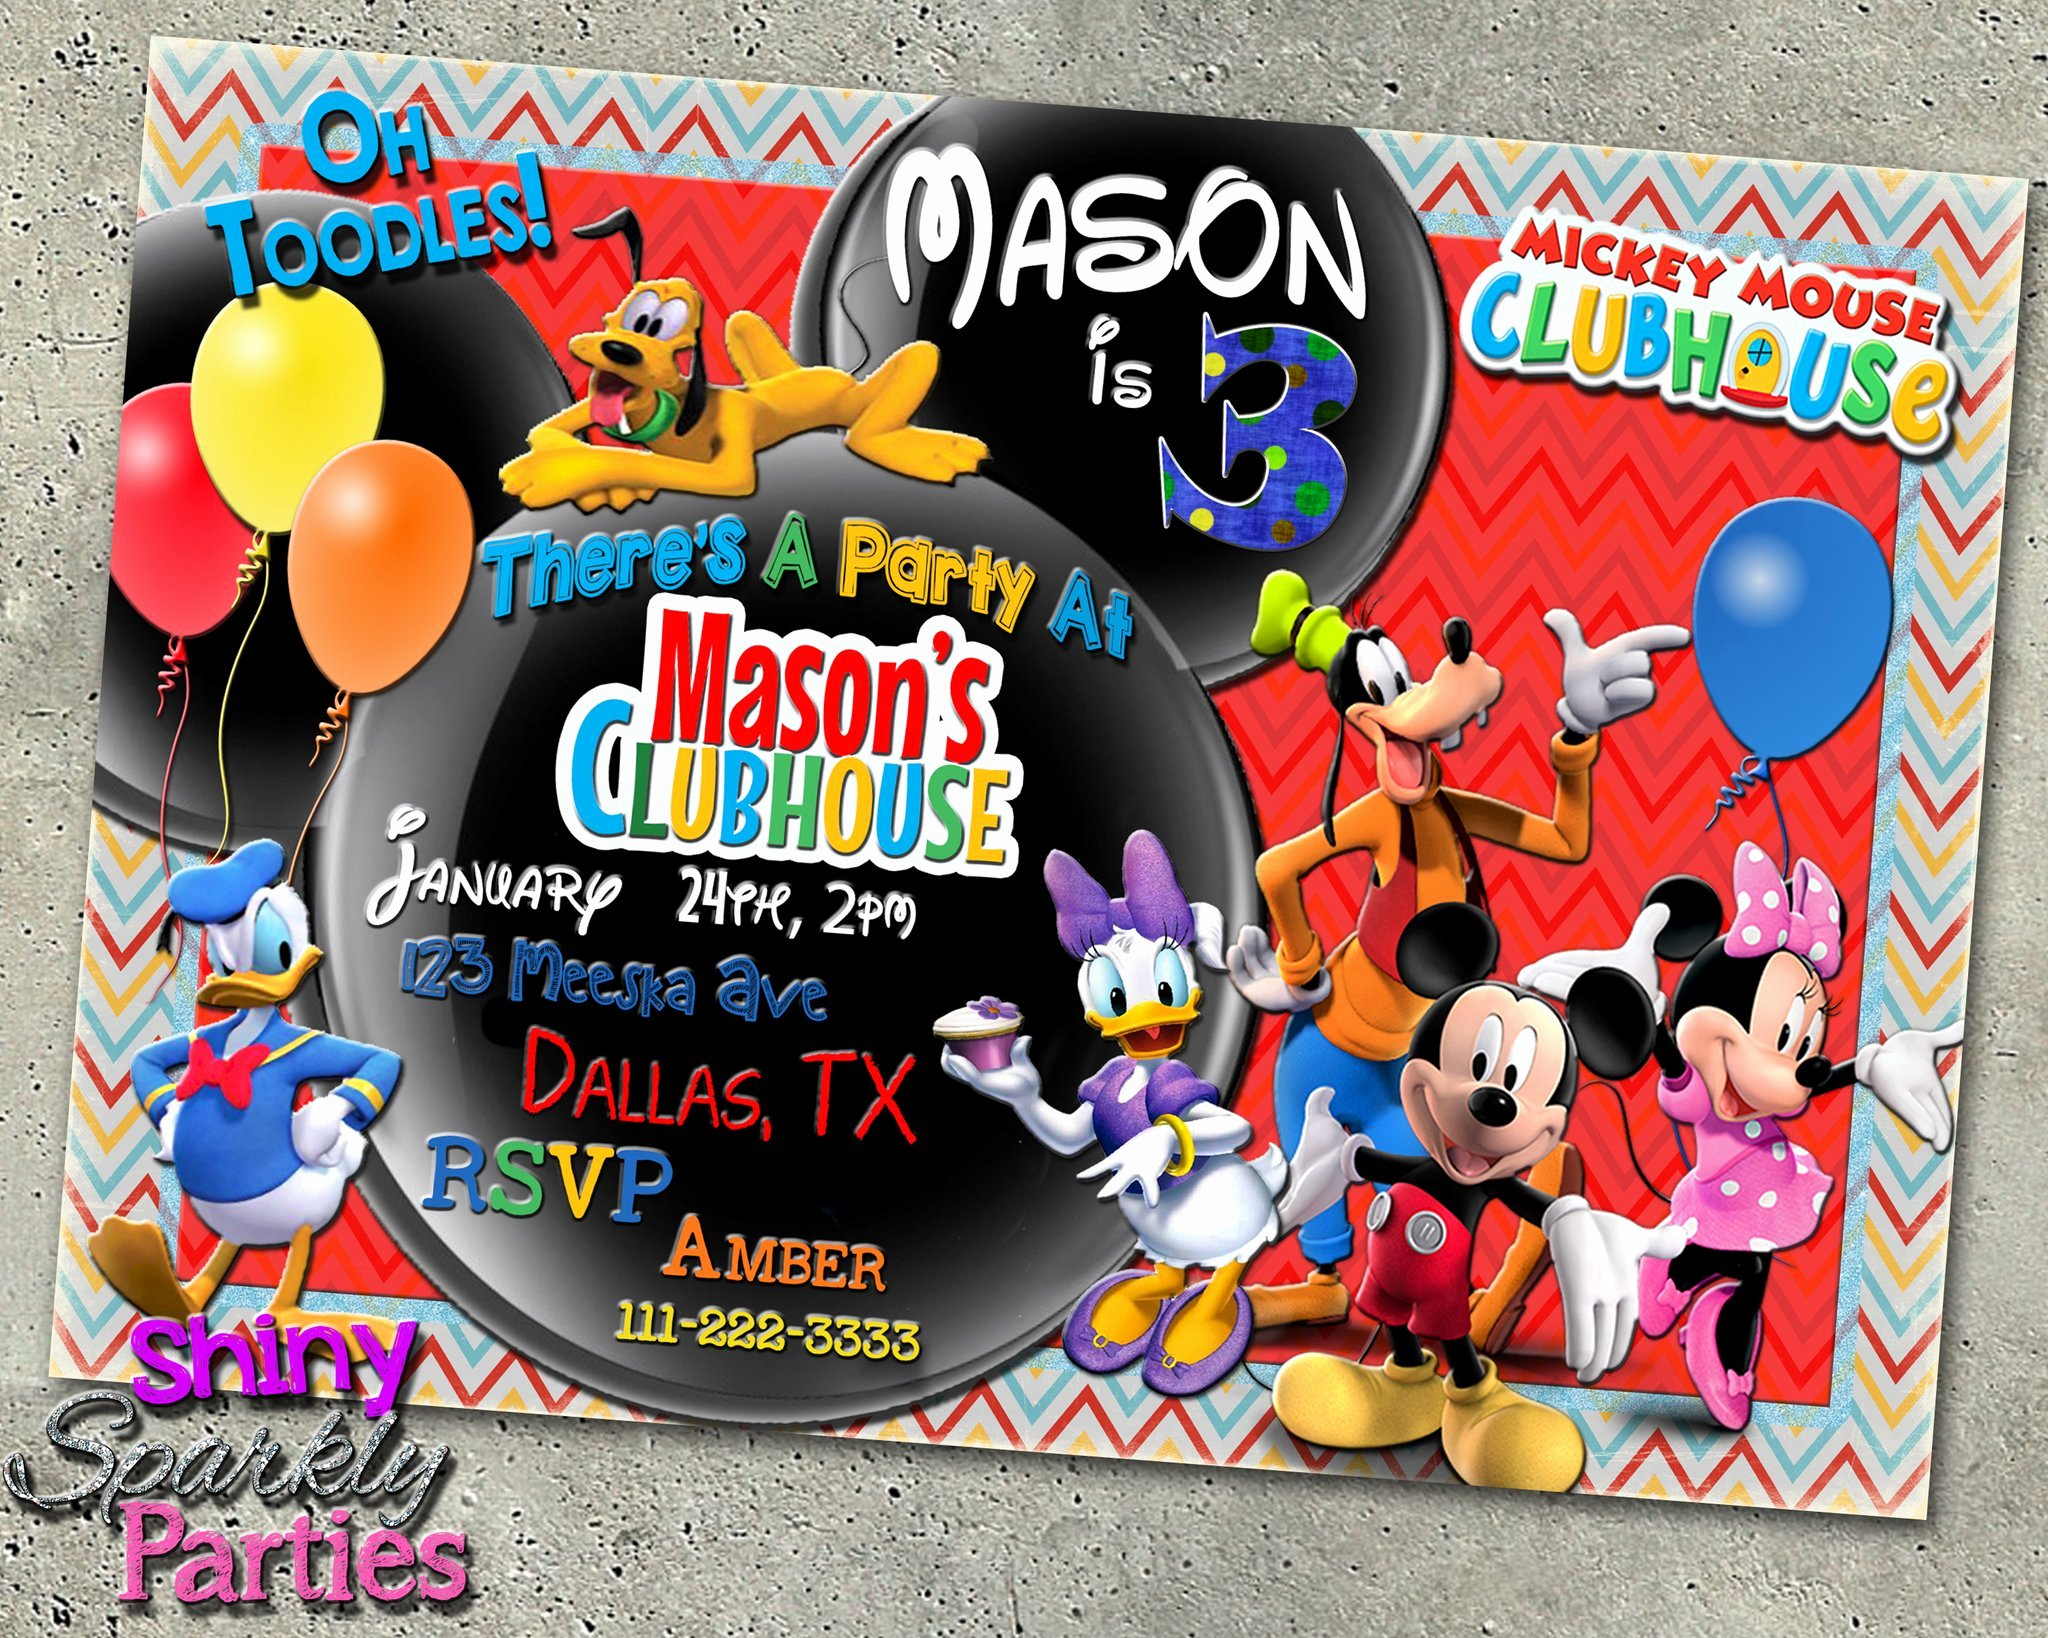 Mickey Mouse Clubhouse Birthday Invites Lovely Mickey Mouse Clubhouse Birthday Invitation forever Fab Boutique